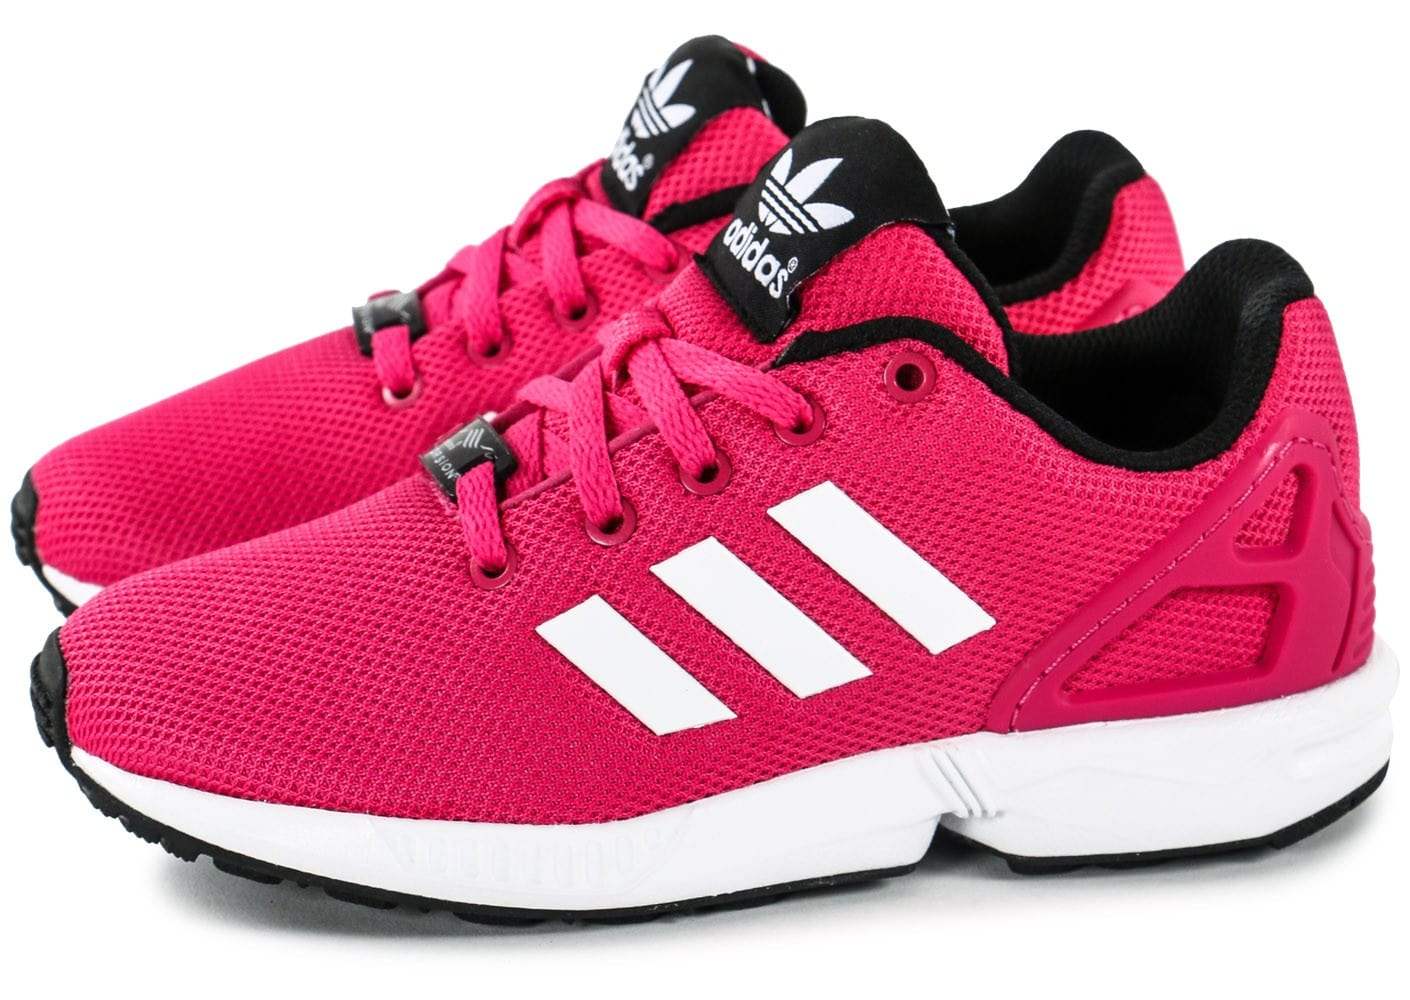 adidas zx flux enfant rose chaussures adidas chausport. Black Bedroom Furniture Sets. Home Design Ideas